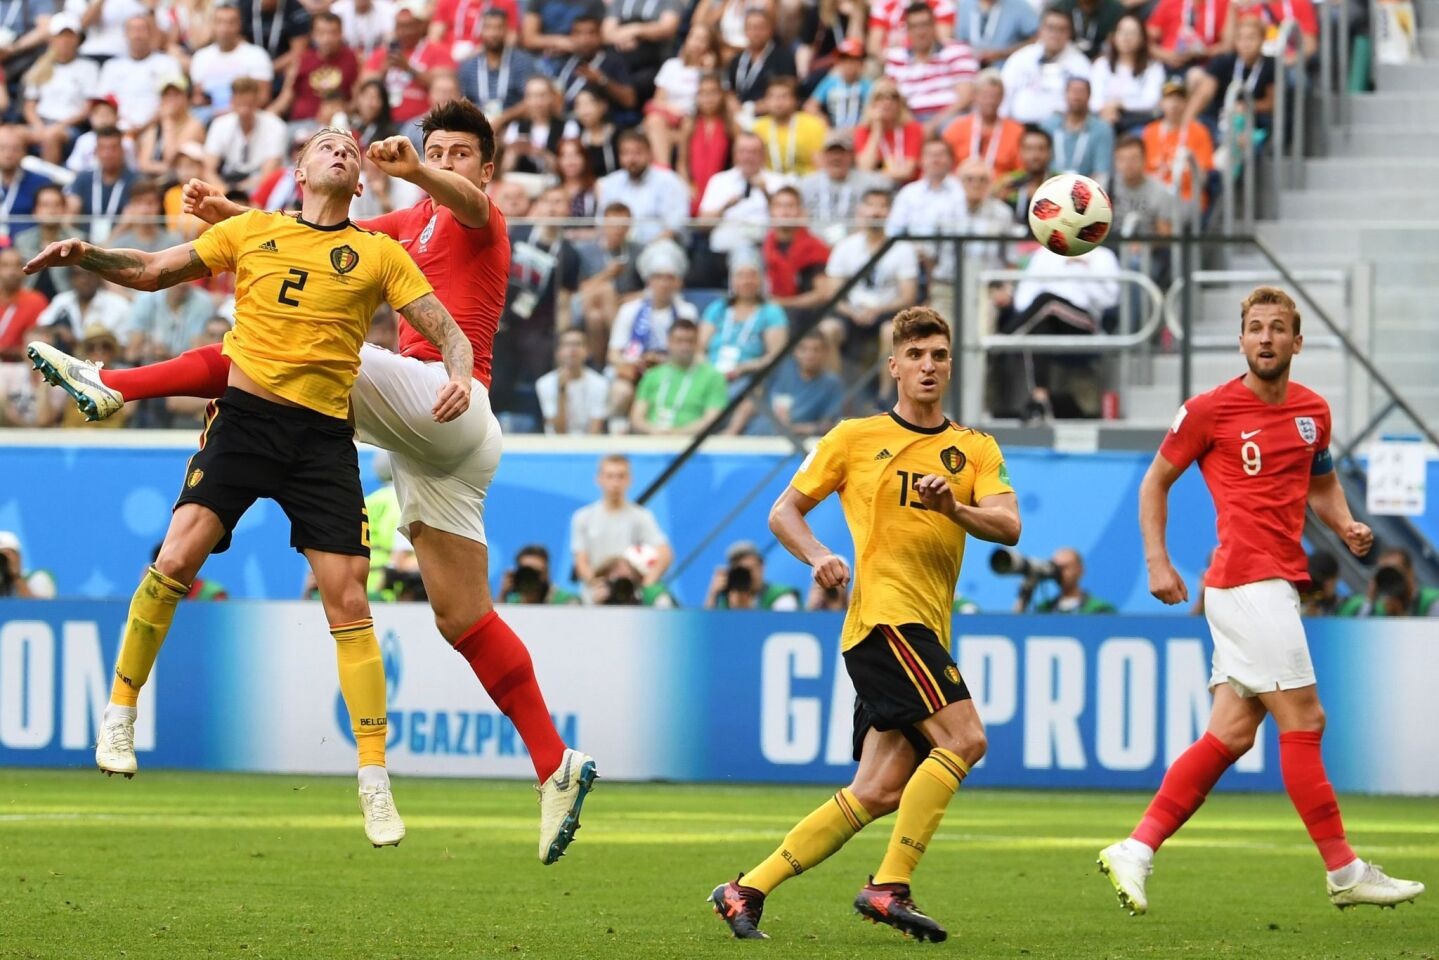 Belgium's defender Toby Alderweireld (L) and England's defender Harry Maguire (2nd L) jump for the ball during their Russia 2018 World Cup play-off for third place football match between Belgium and England at the Saint Petersburg Stadium in Saint Petersburg on July 14, 2018. / AFP PHOTO / Paul ELLIS / RESTRICTED TO EDITORIAL USE - NO MOBILE PUSH ALERTS/DOWNLOADS PAUL ELLIS/AFP/Getty Images ** OUTS - ELSENT, FPG, CM - OUTS * NM, PH, VA if sourced by CT, LA or MoD **